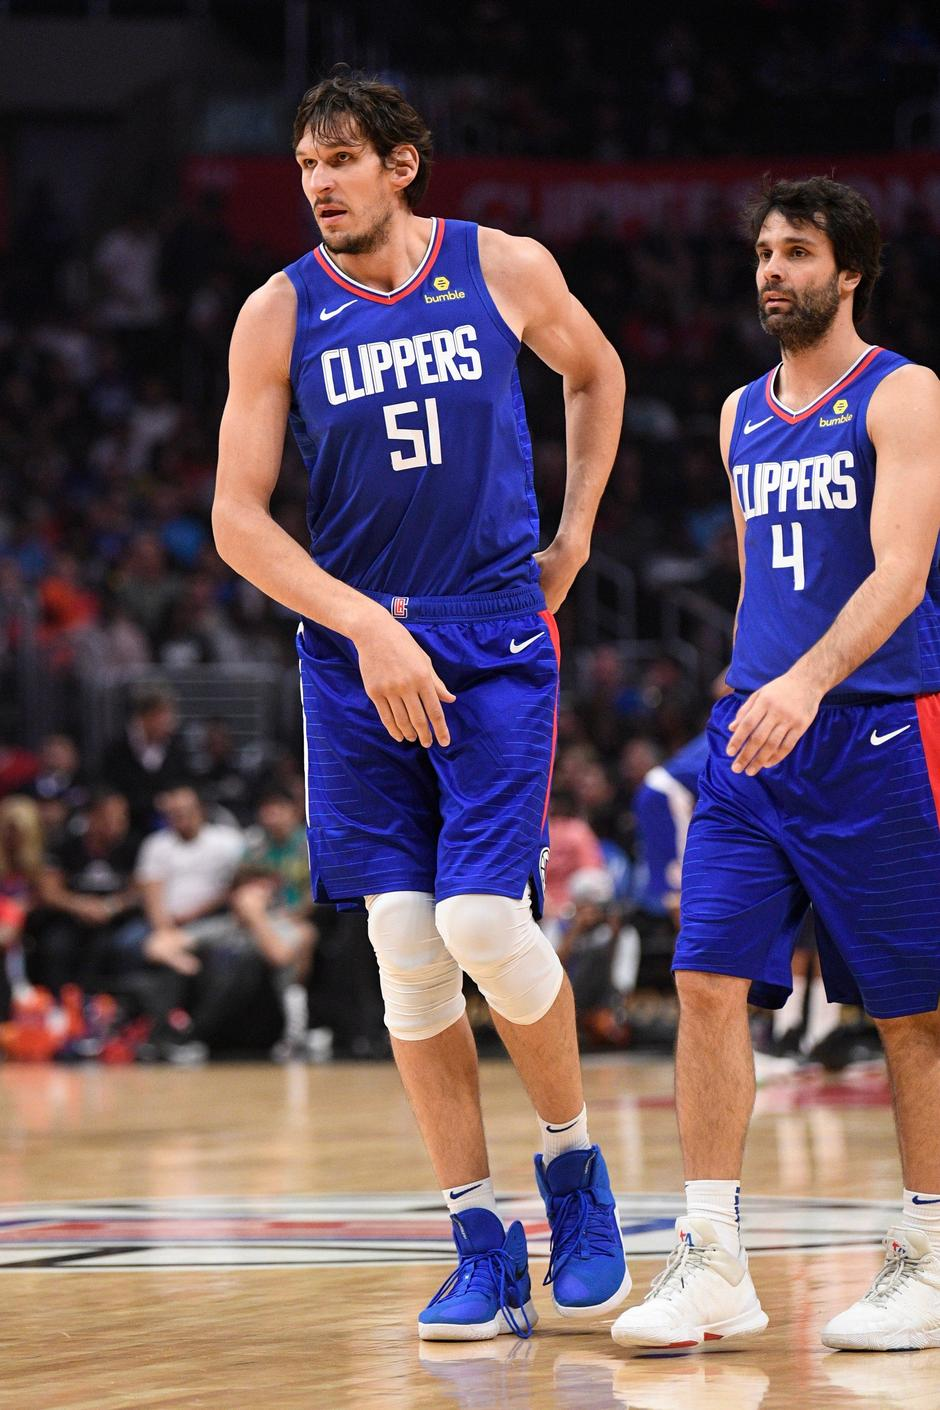 Boban Marjanovic and Milos Teodosic Author: Profimedia